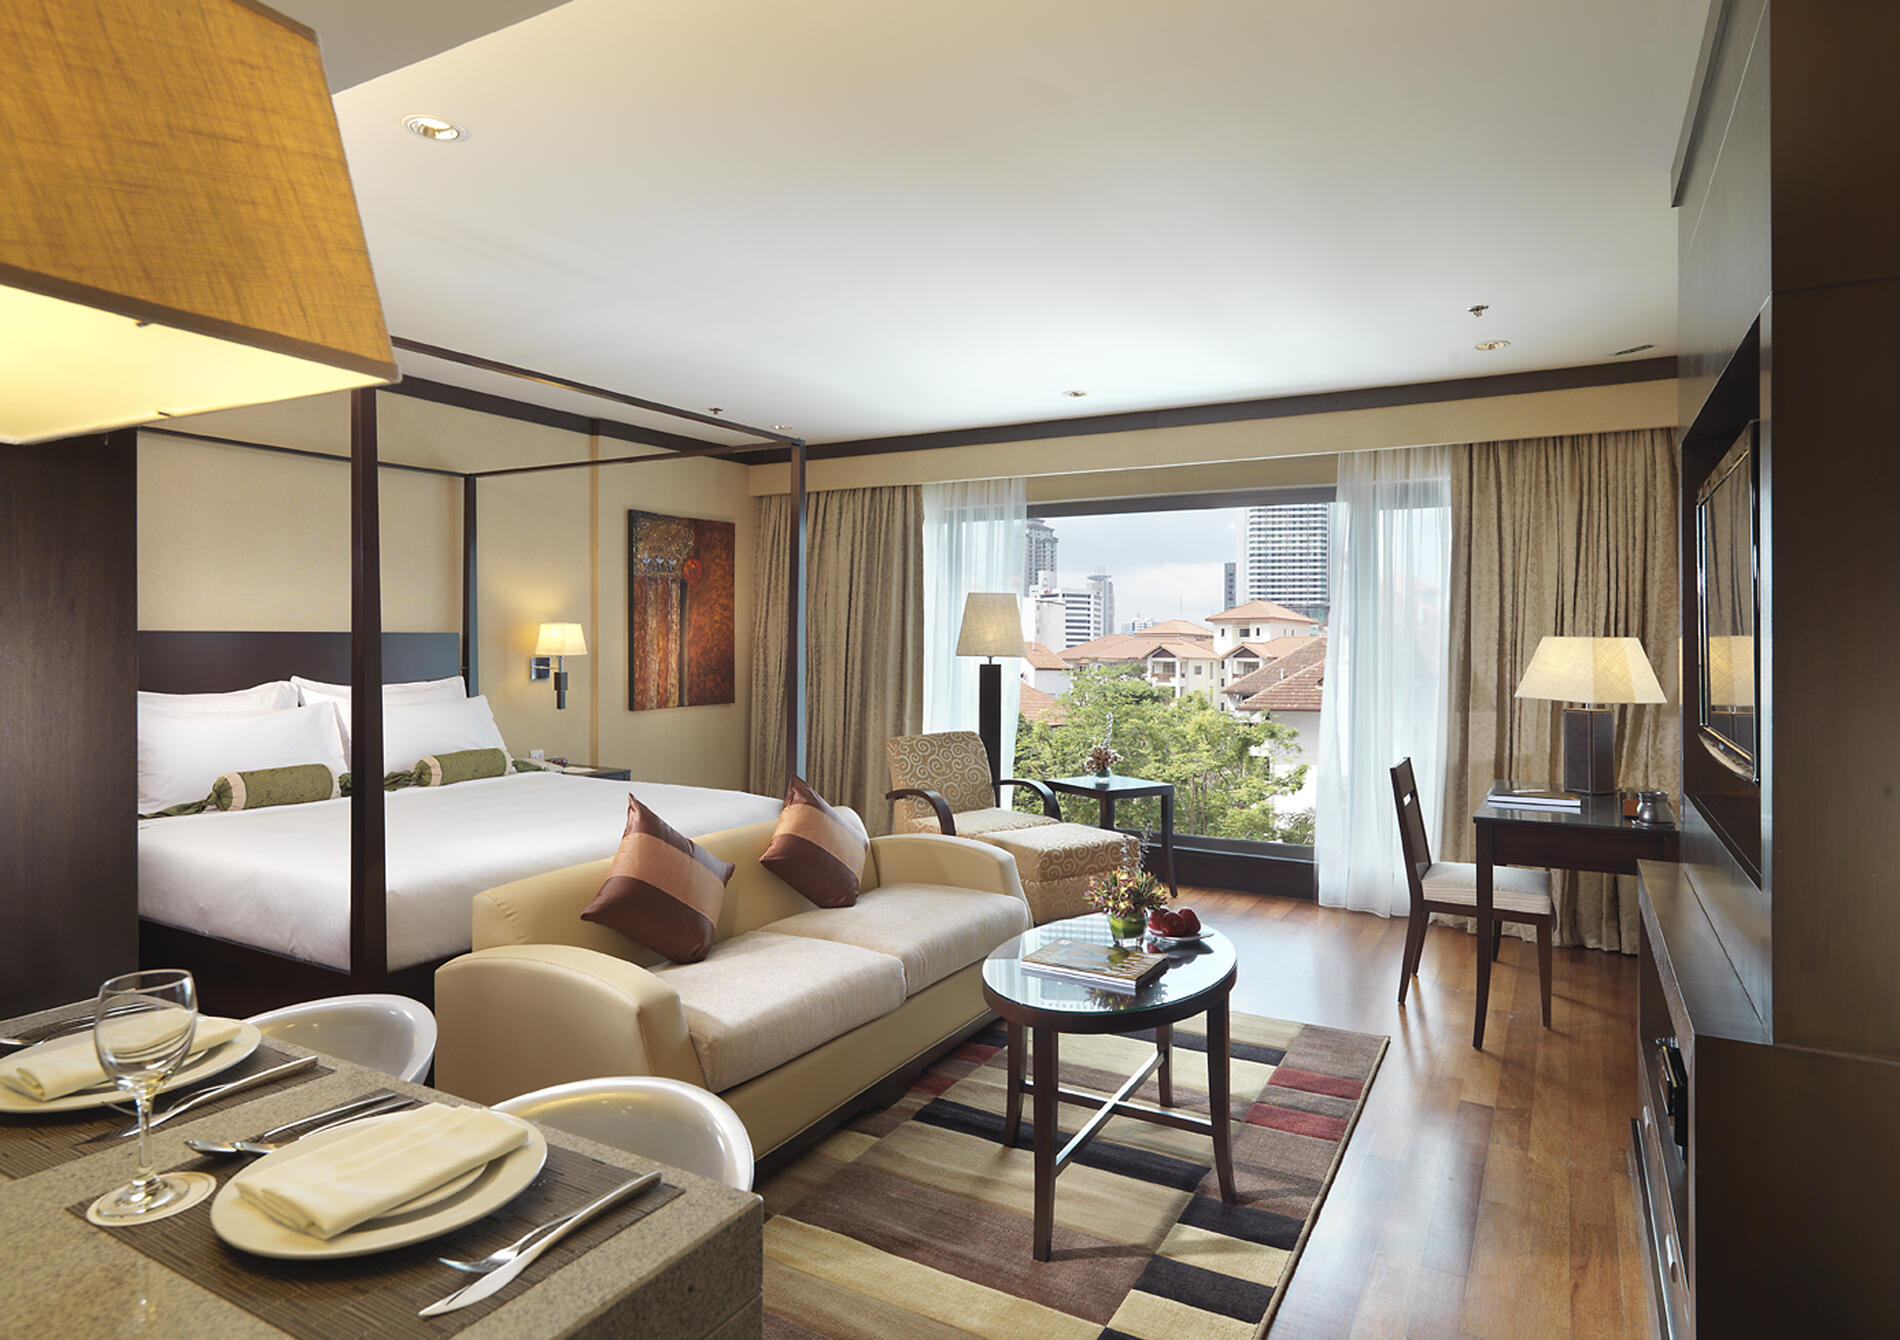 Luxurious accommodation equipped with the finest facilities, con